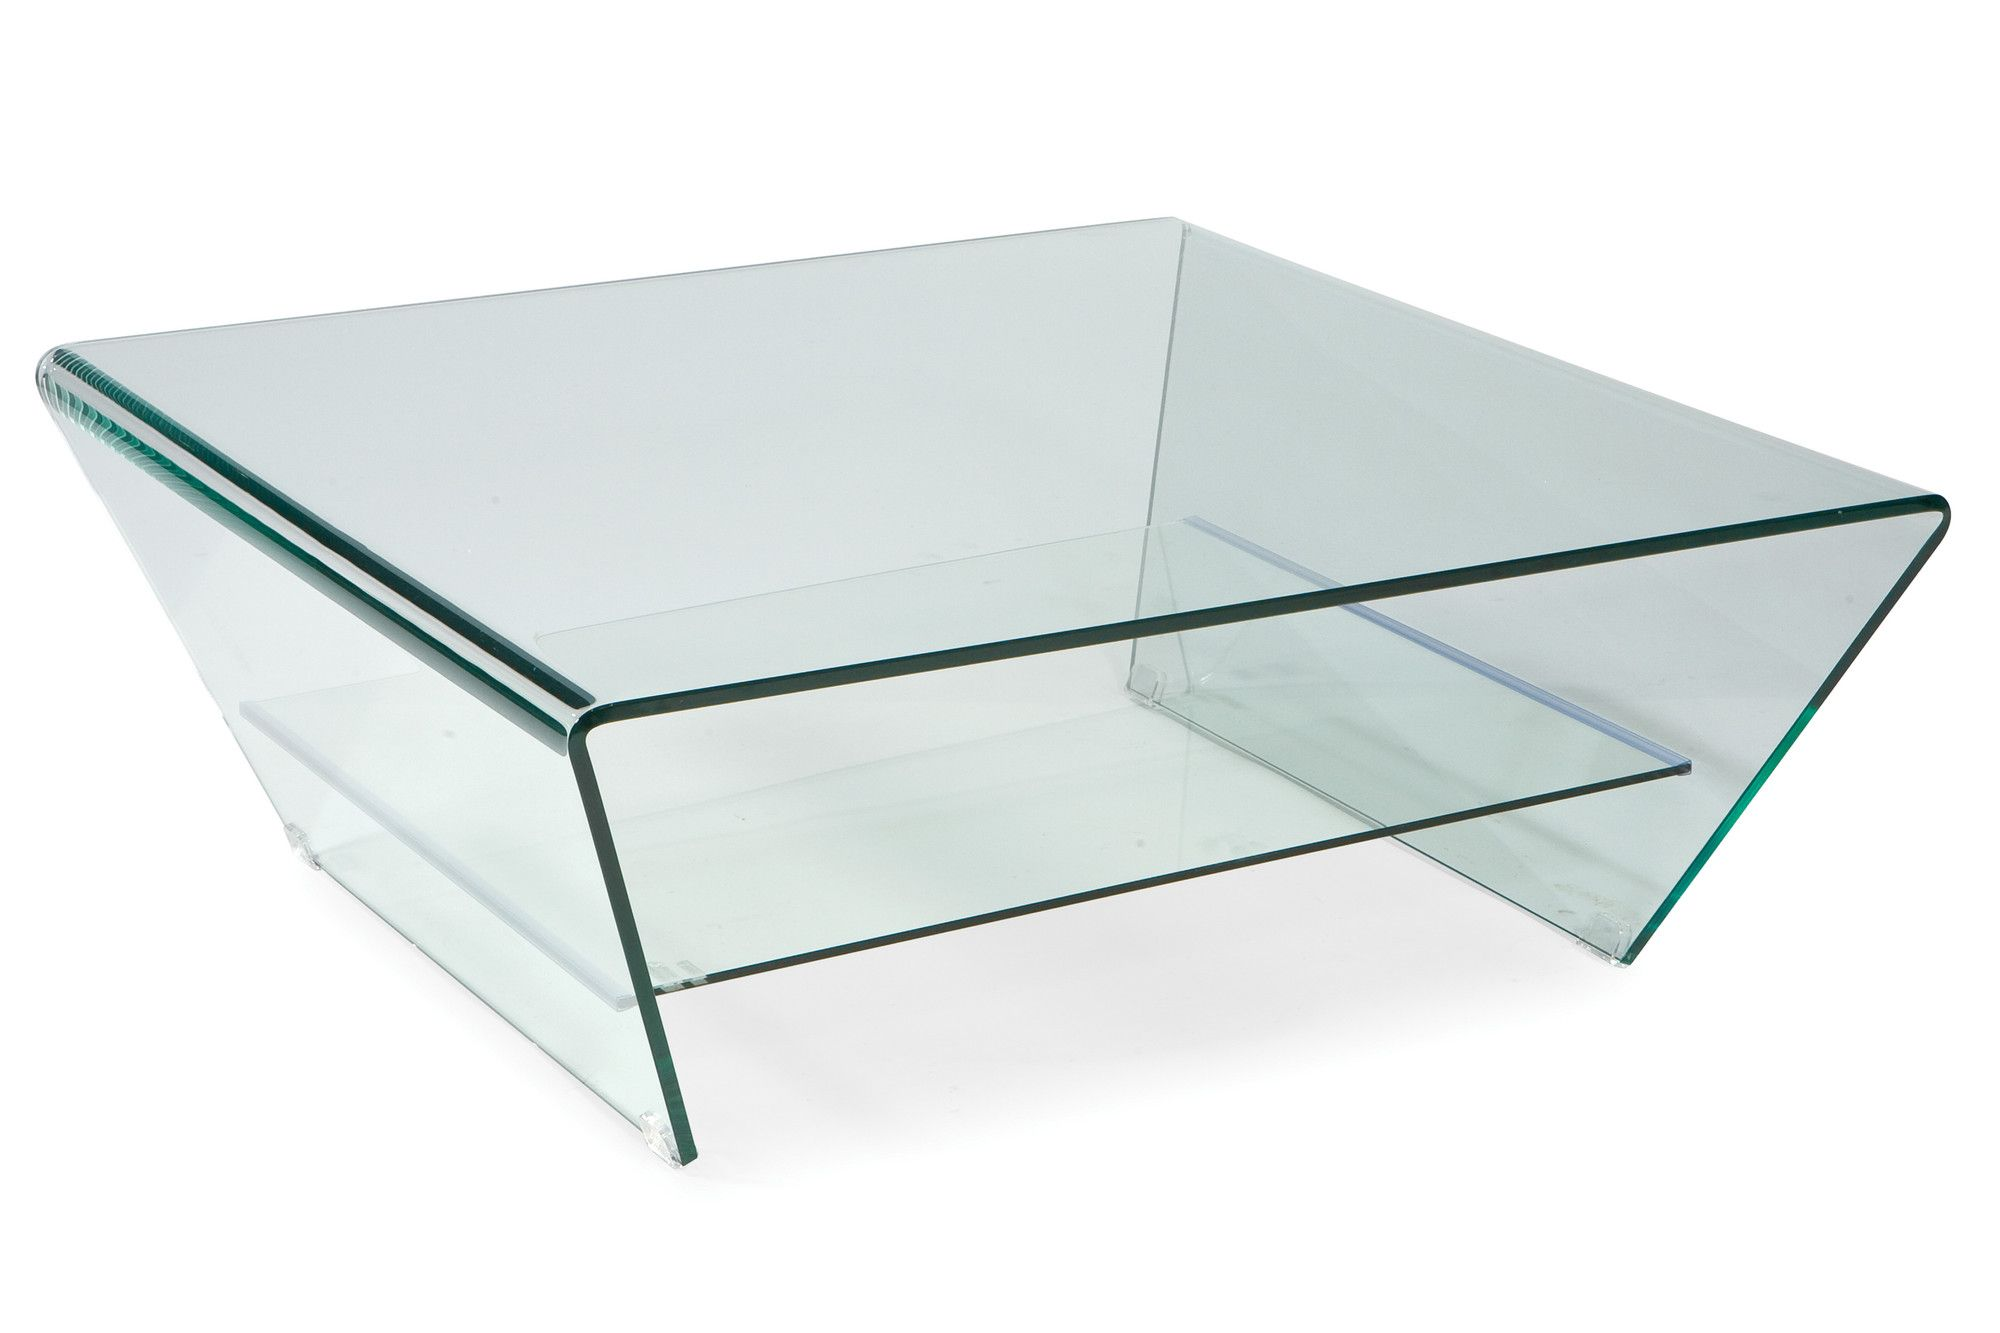 Moe S Home Collection Tocca Coffee Table Coffee Table Modern Coffee Tables All Glass Coffee Table [ 1333 x 2000 Pixel ]